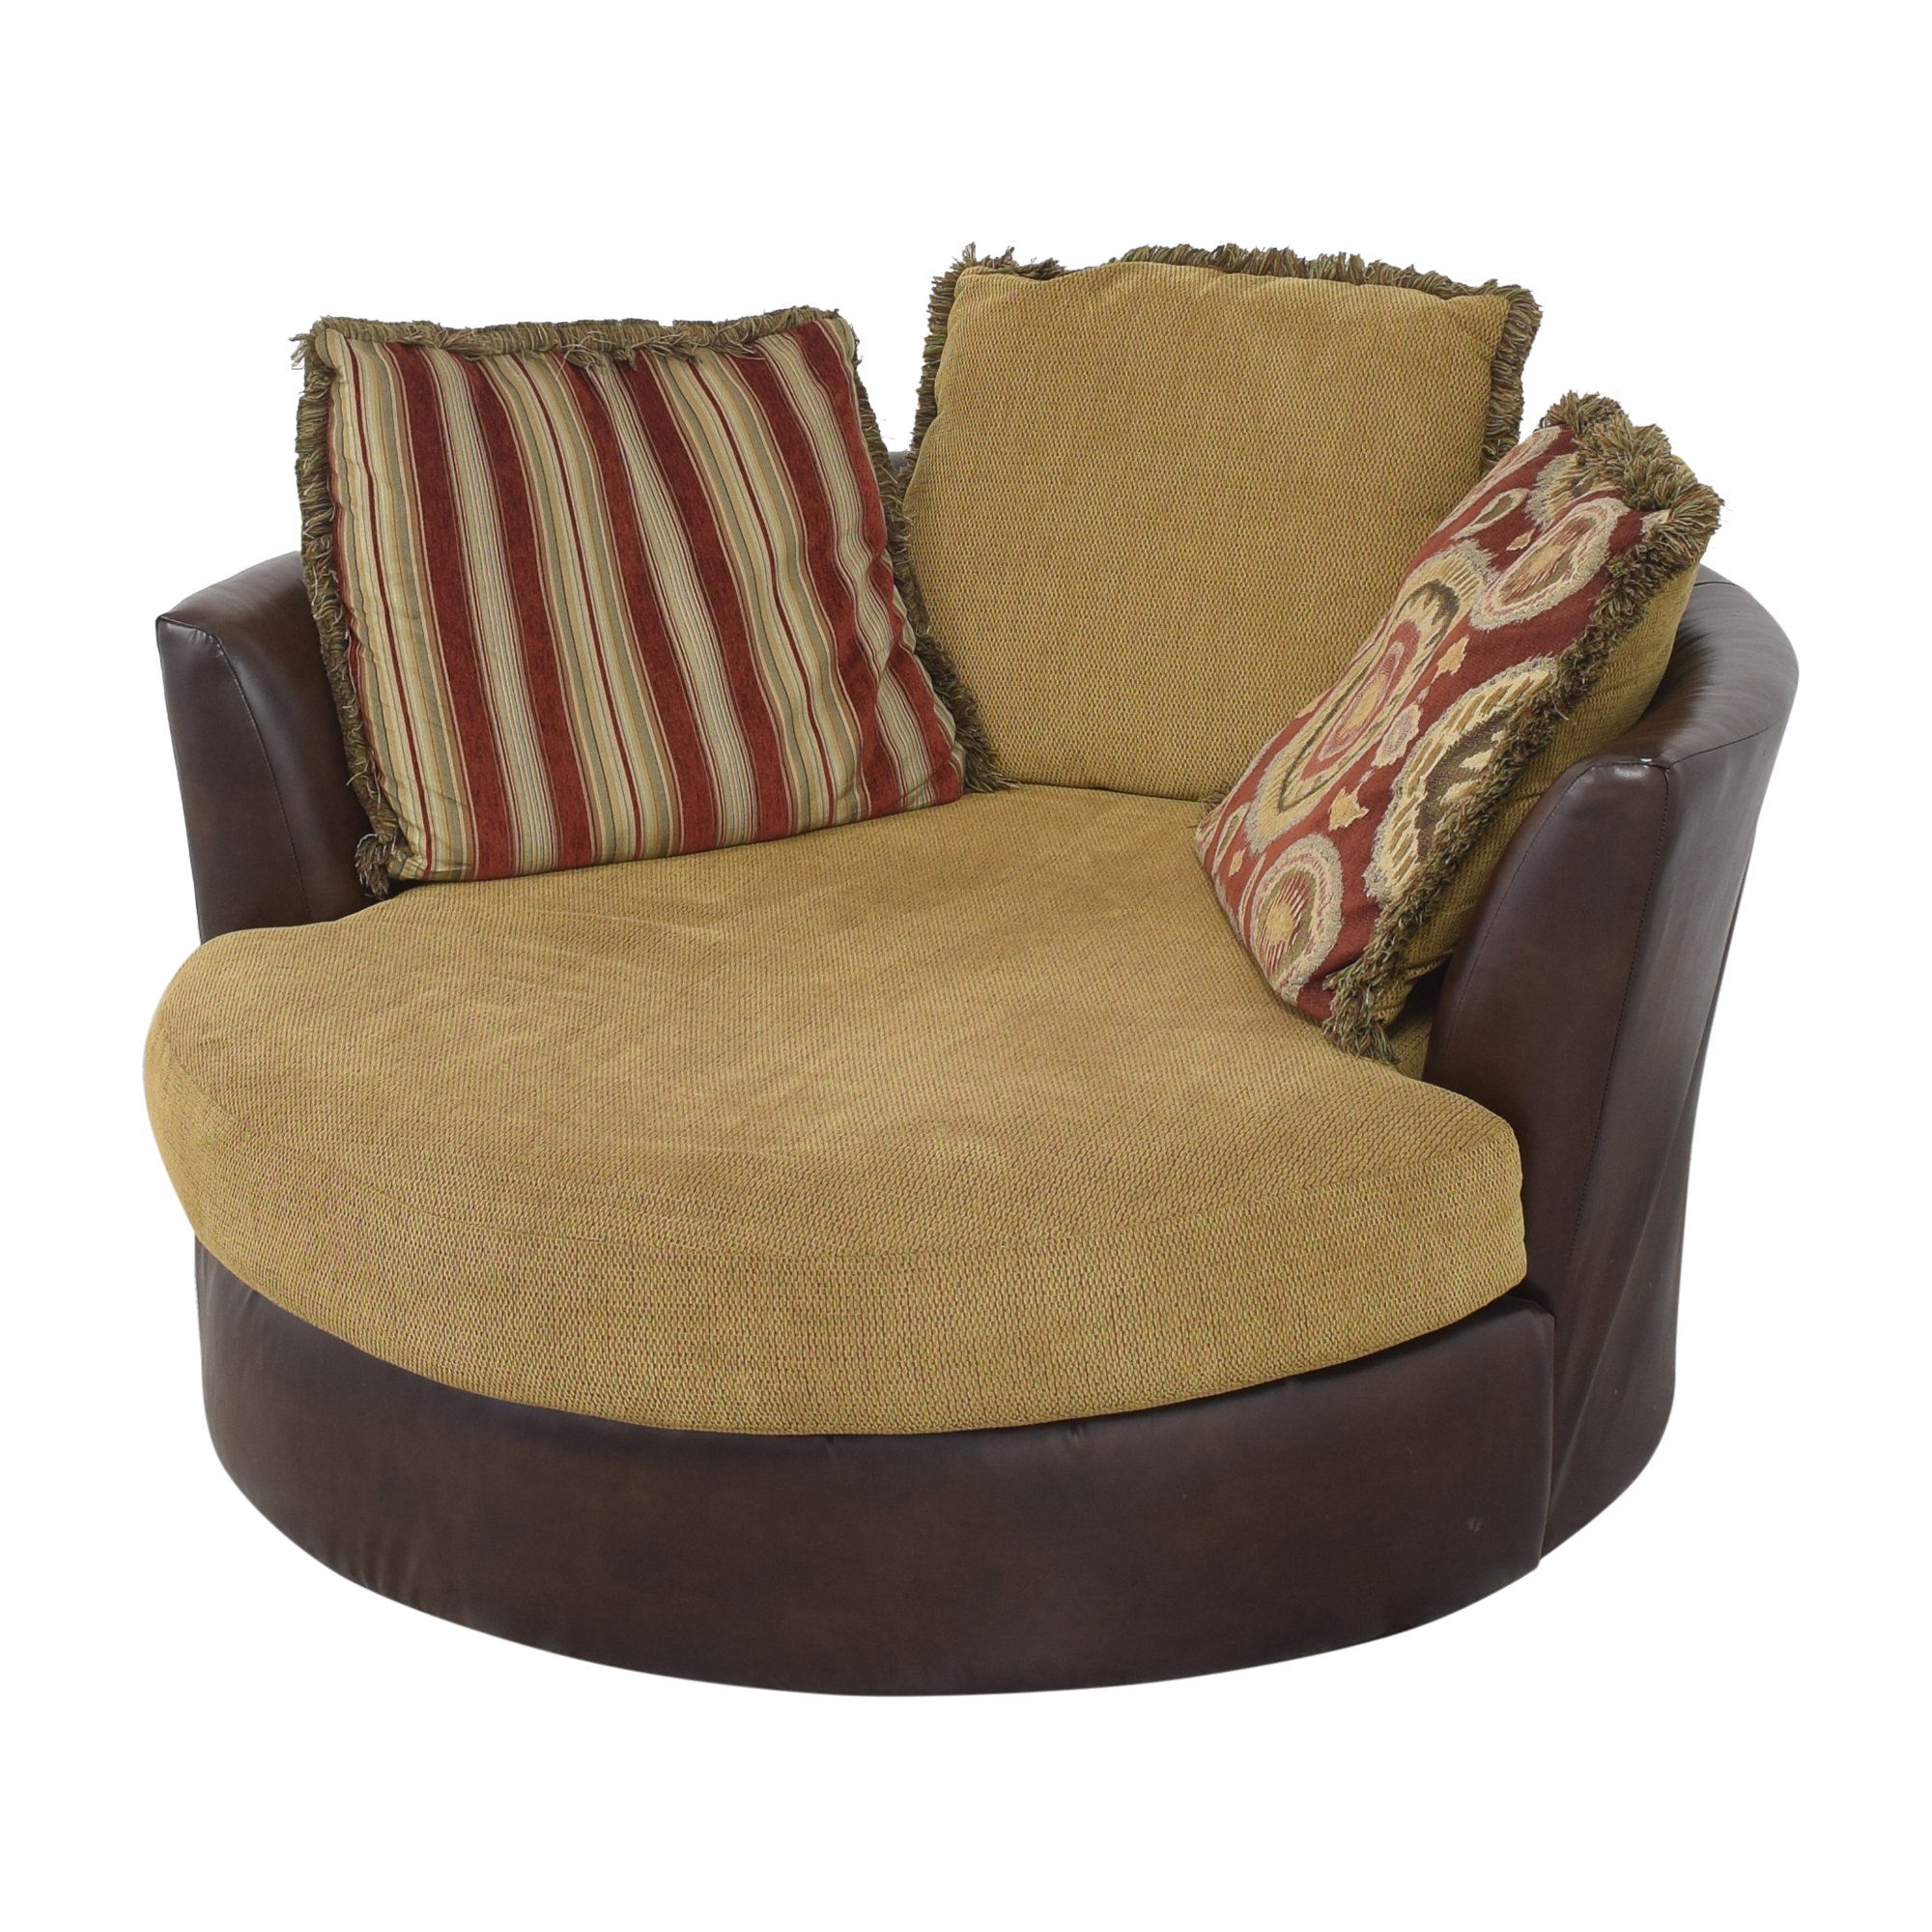 Albany Industries Albany Industries Newport Swivel Chair discount